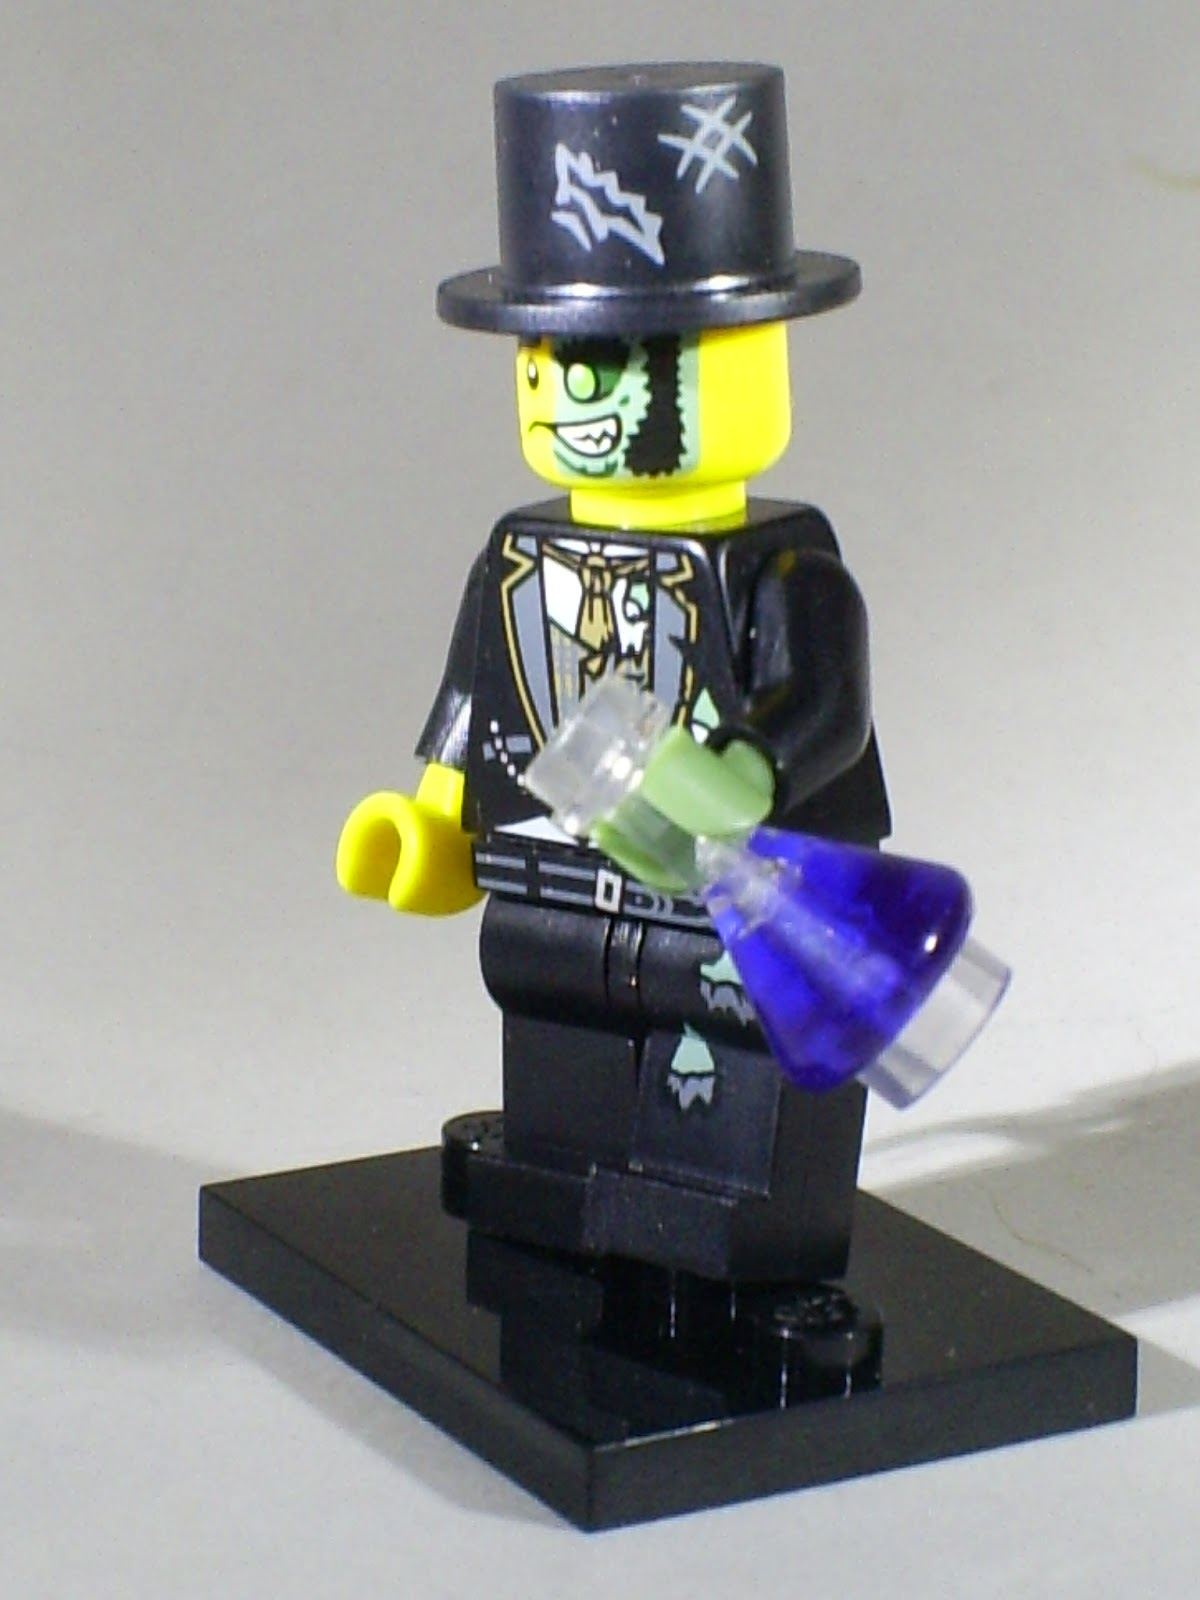 Series 9 NEW Minifig Dr Jekyll Collectable Minifigure LEGO Mr Good /& Evil